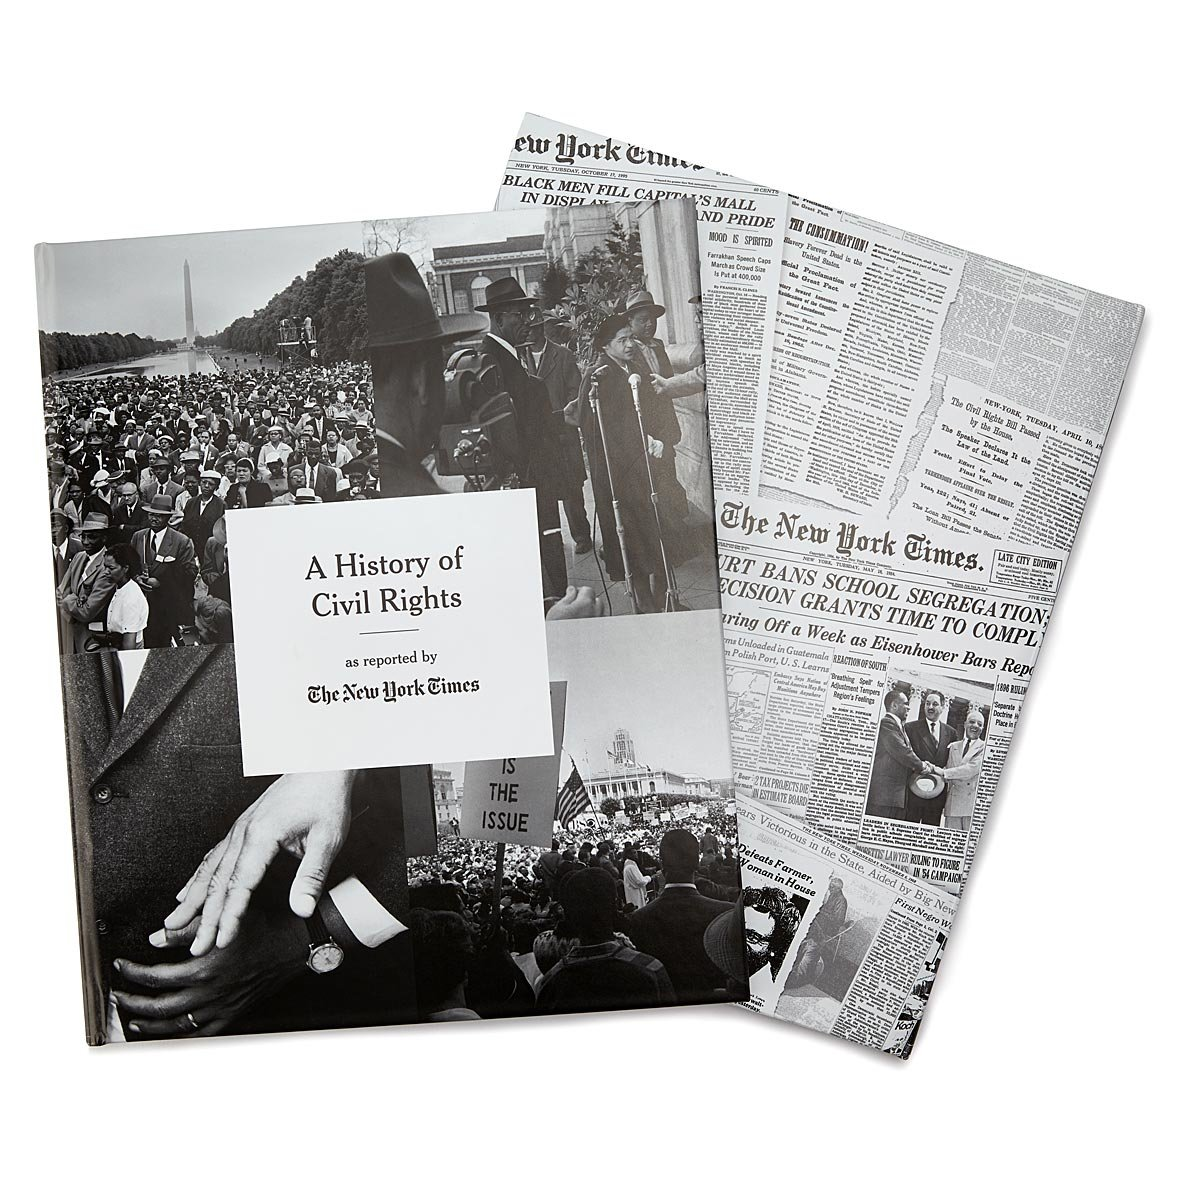 New York Times - A History of Civil Rights | UncommonGoods